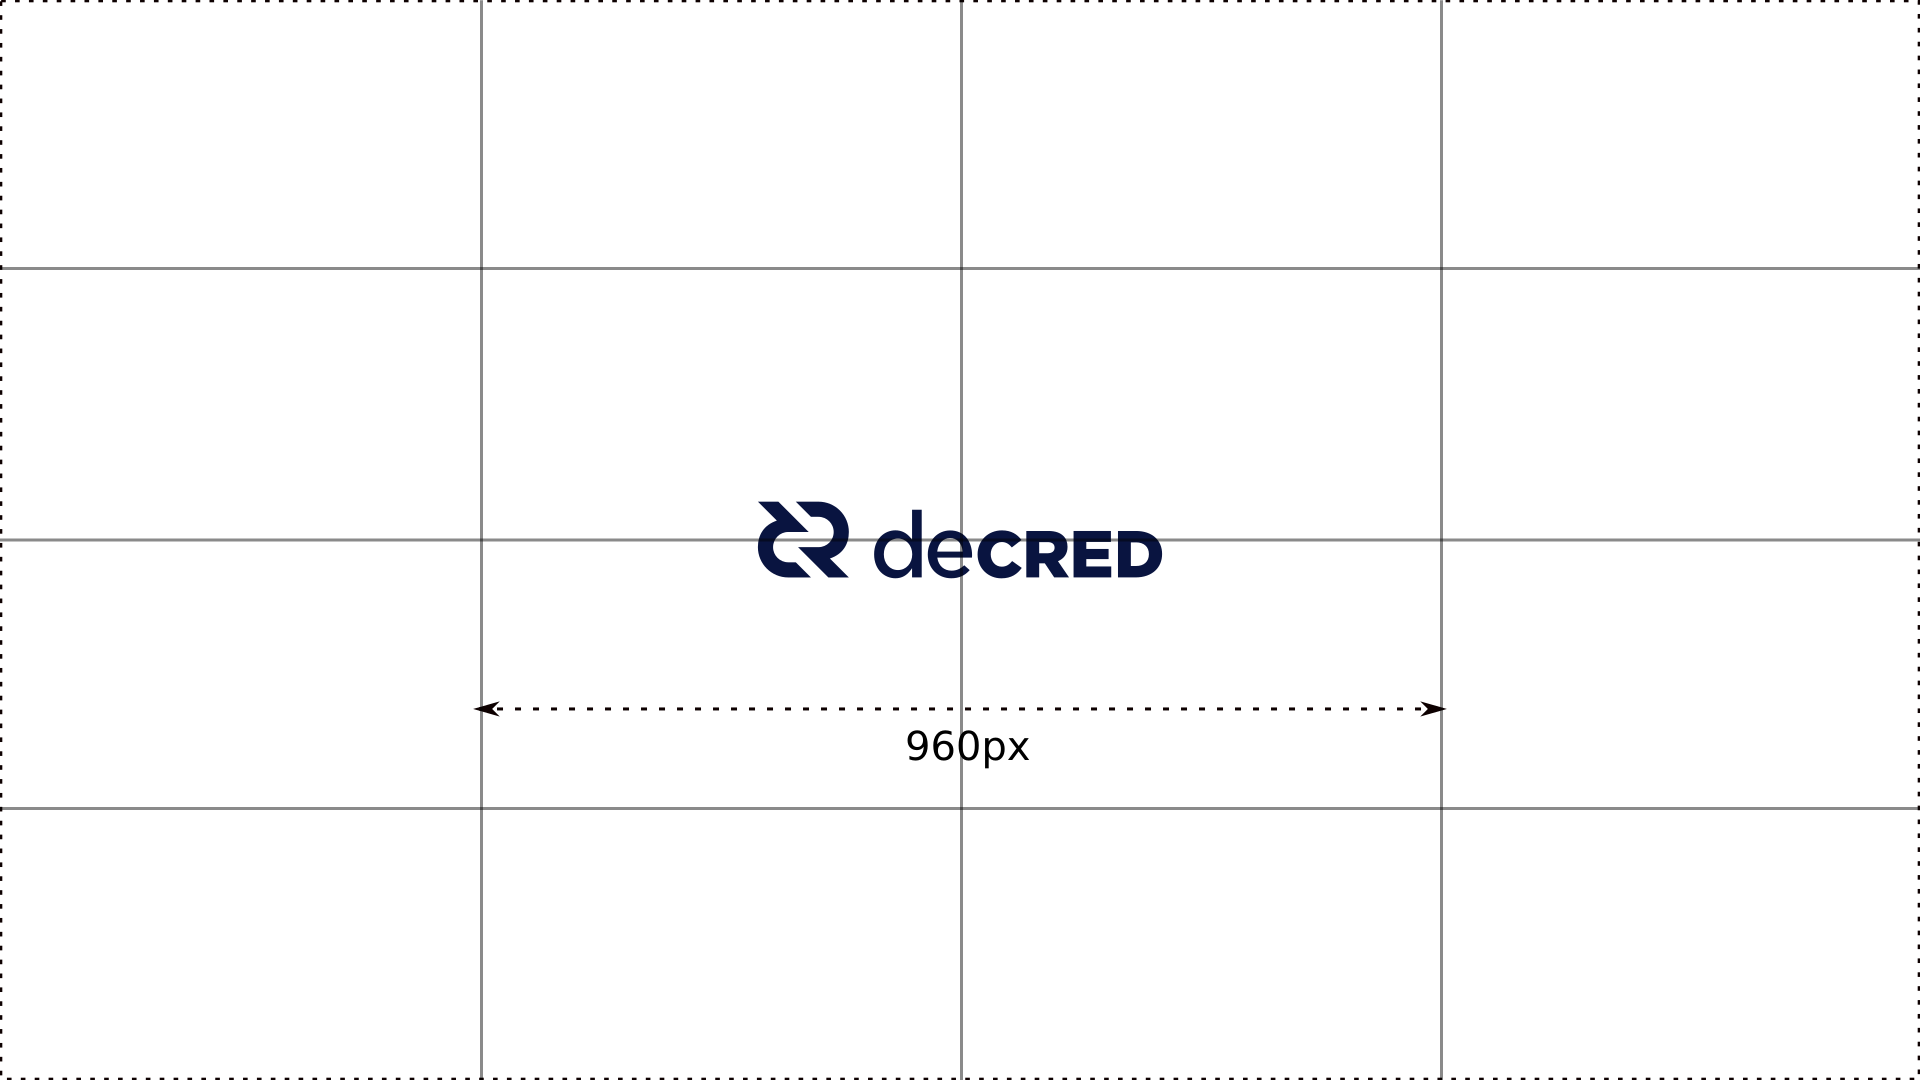 Decentralized Credits Logo Animation · Issue #76 · decred